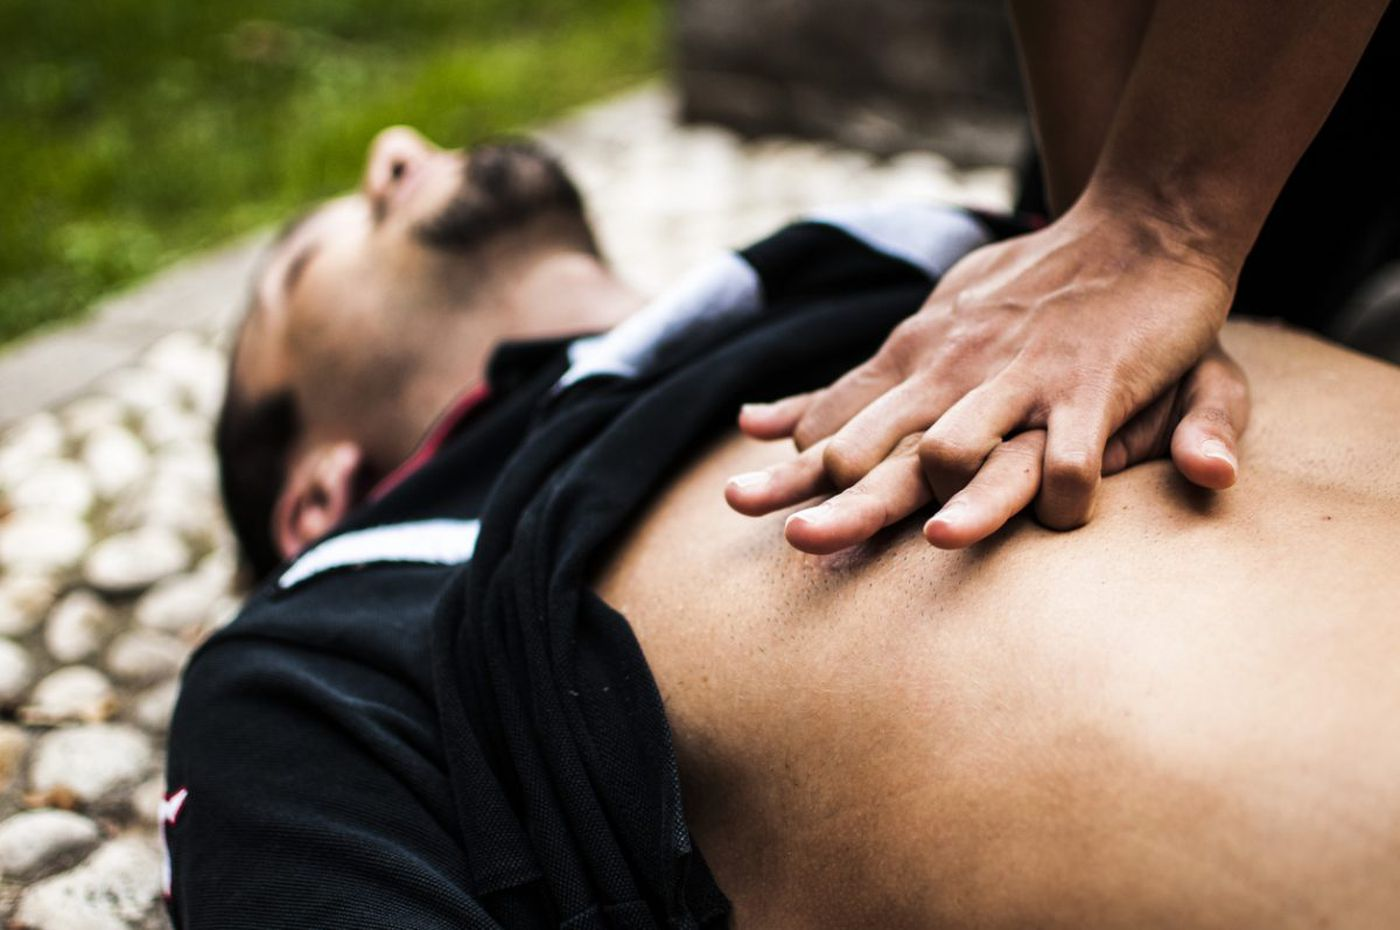 Save a life in two easy steps with hands-only CPR